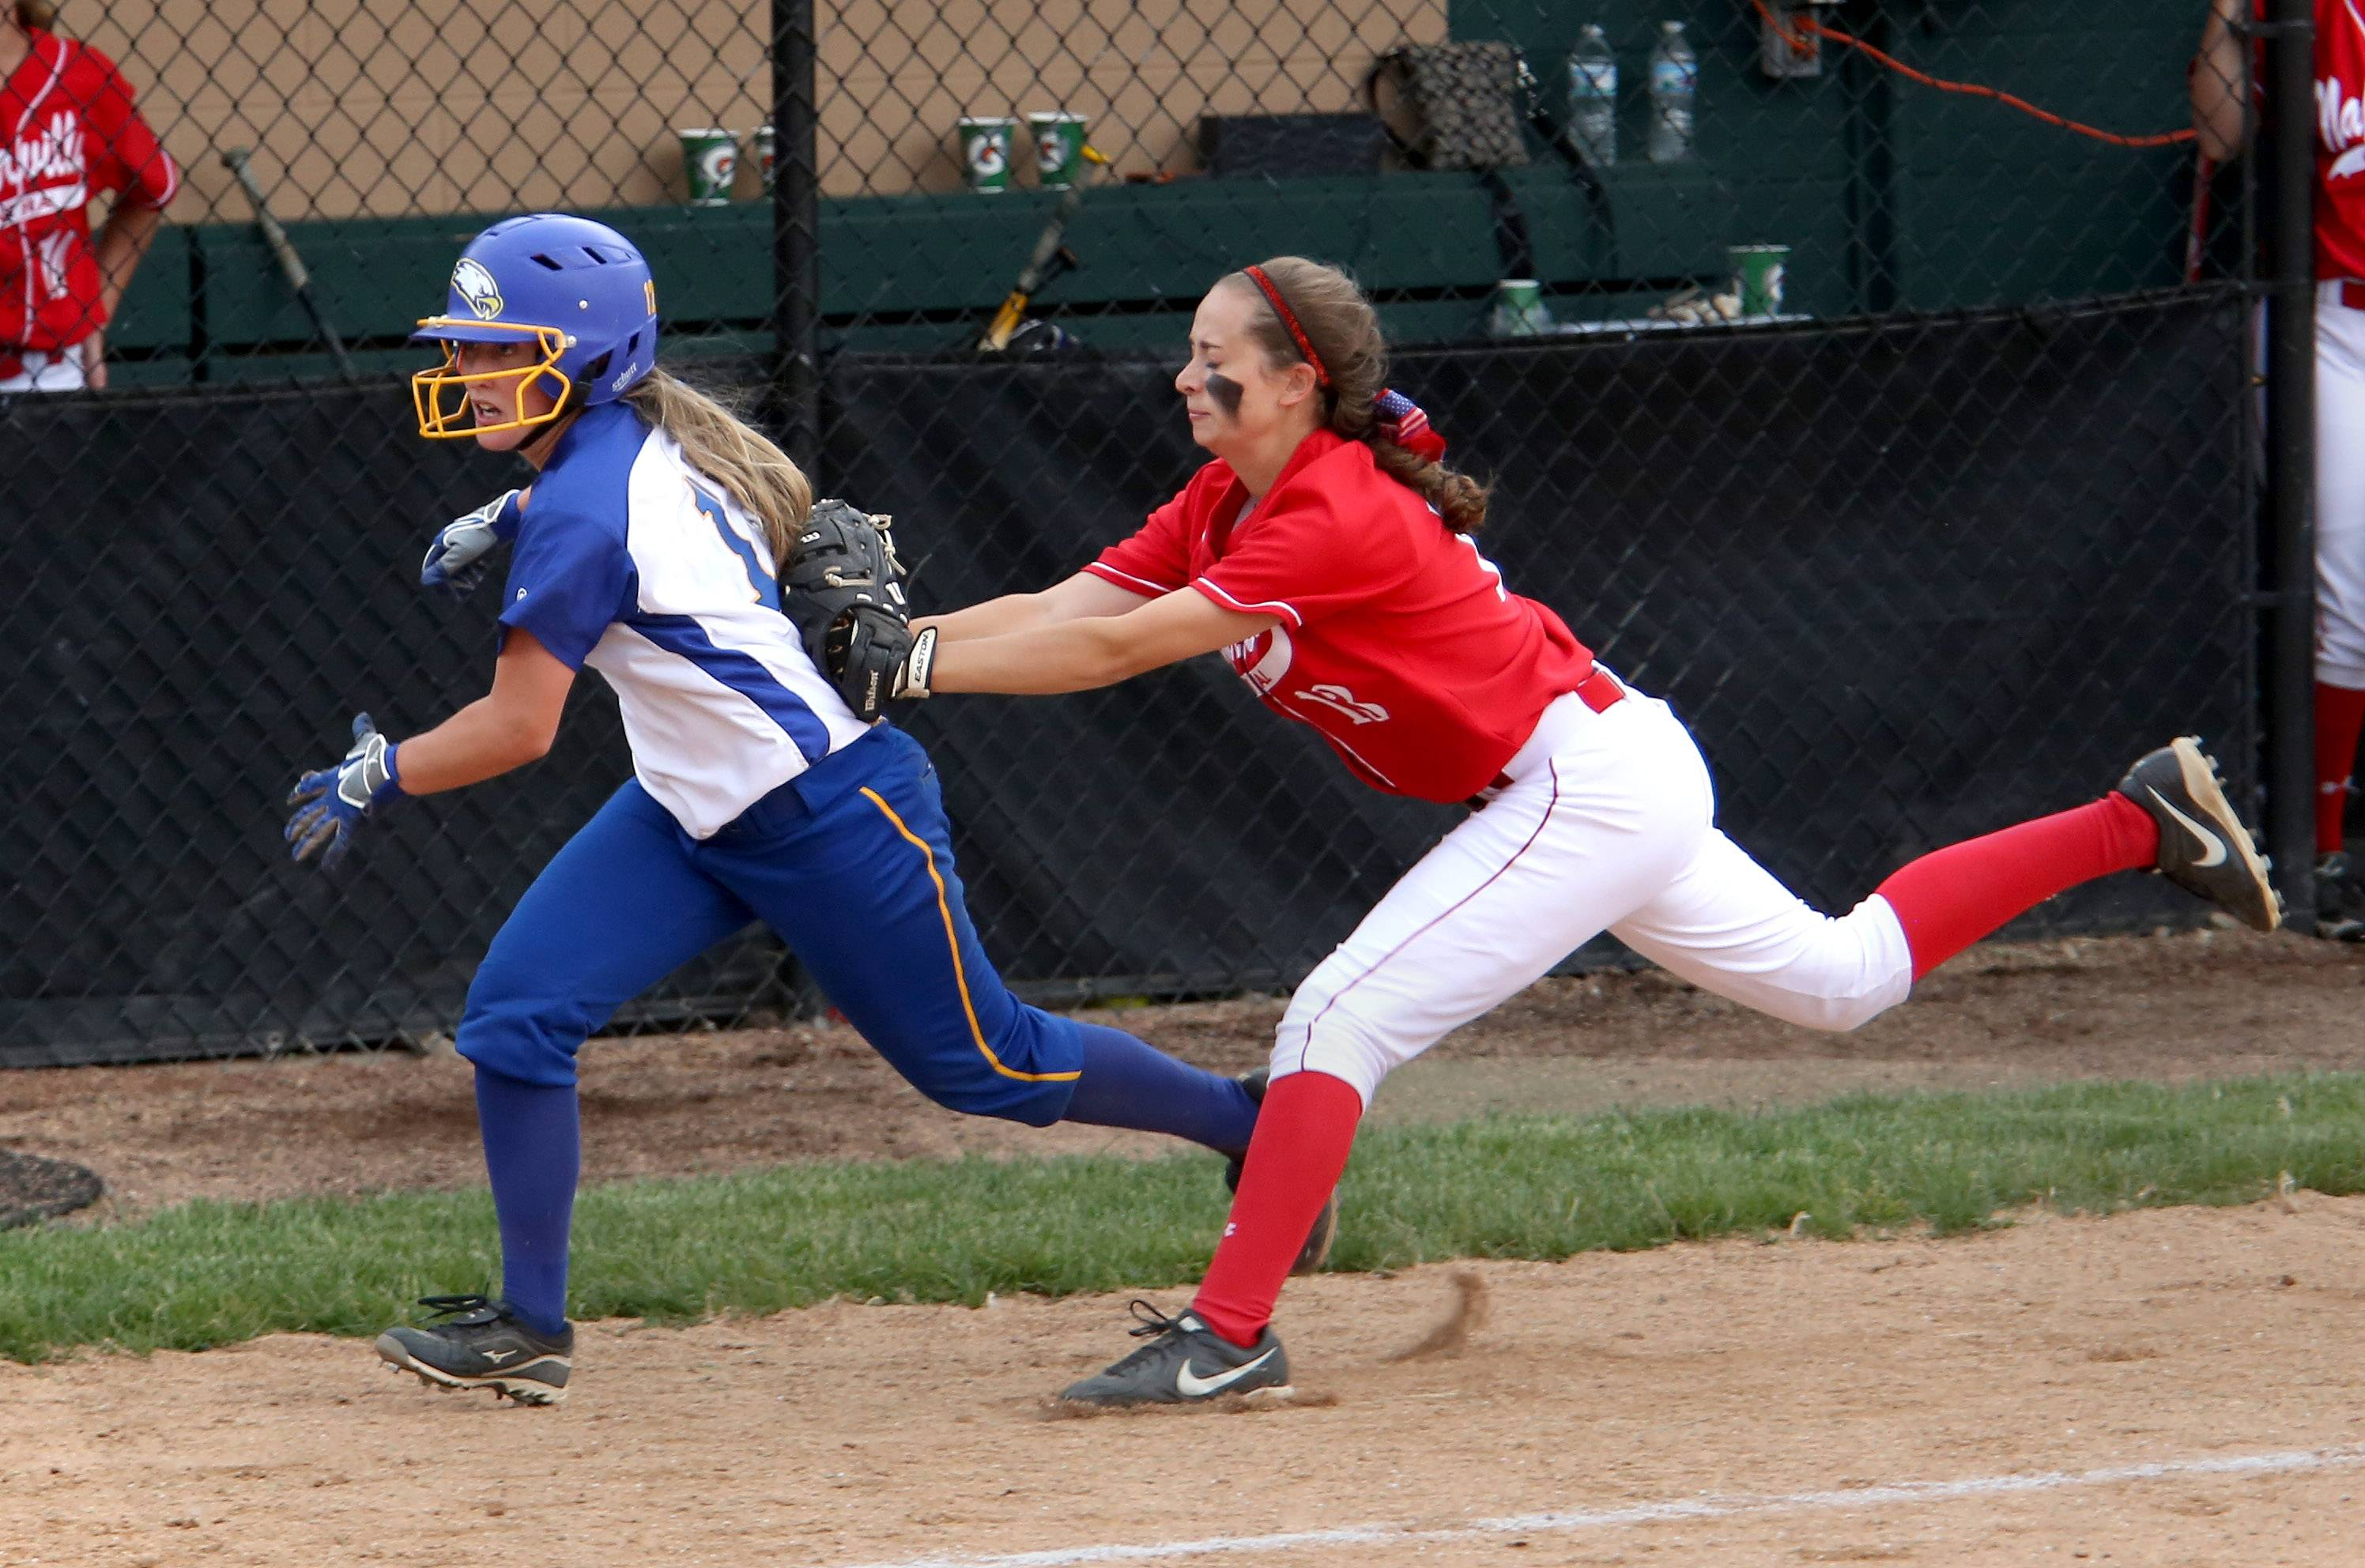 Naperville Central's Courtney Giebel, right, tags out Brianna Soltis of Sandburg, left, after she got caught between third base and home plate in the 6th inning during Class 4A supersectional softball at North Central College in Naperville on Monday.